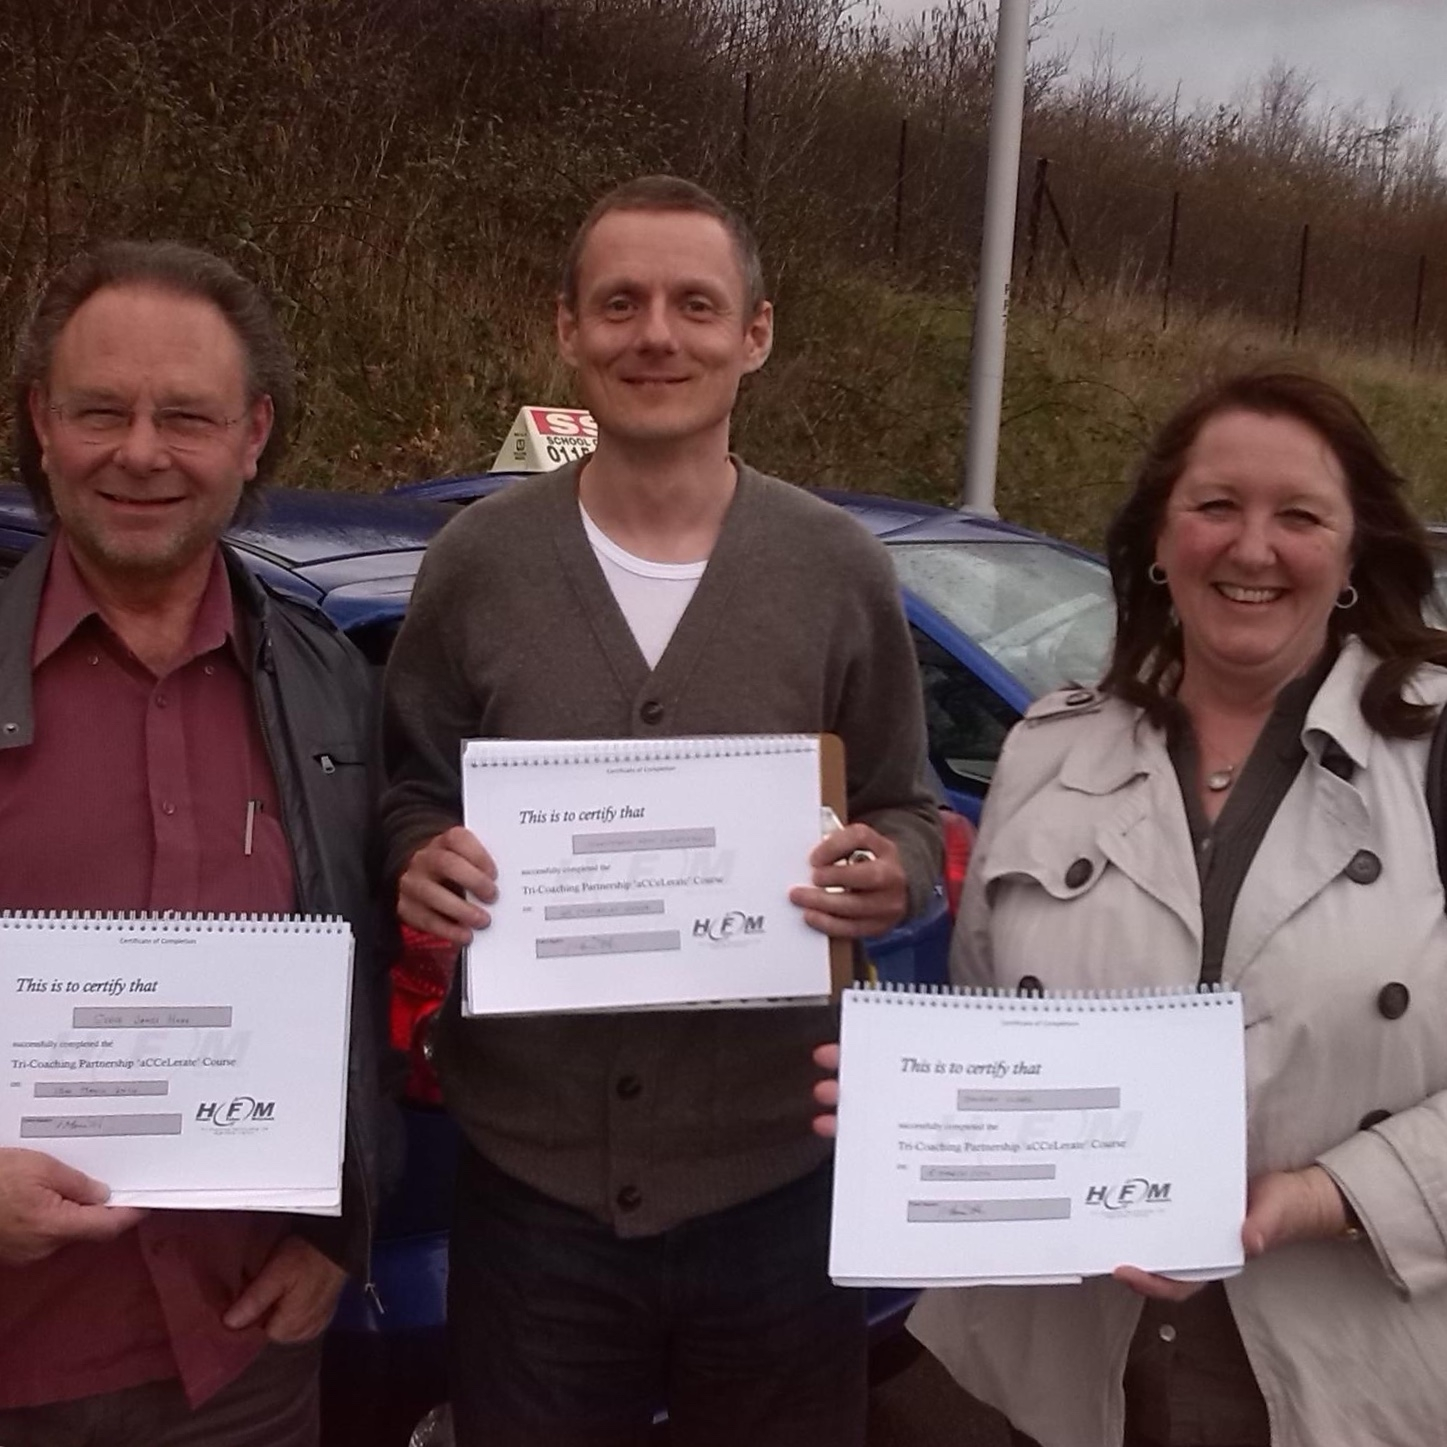 BTEC Level 3 Advanced Award in Coaching for Driver Development